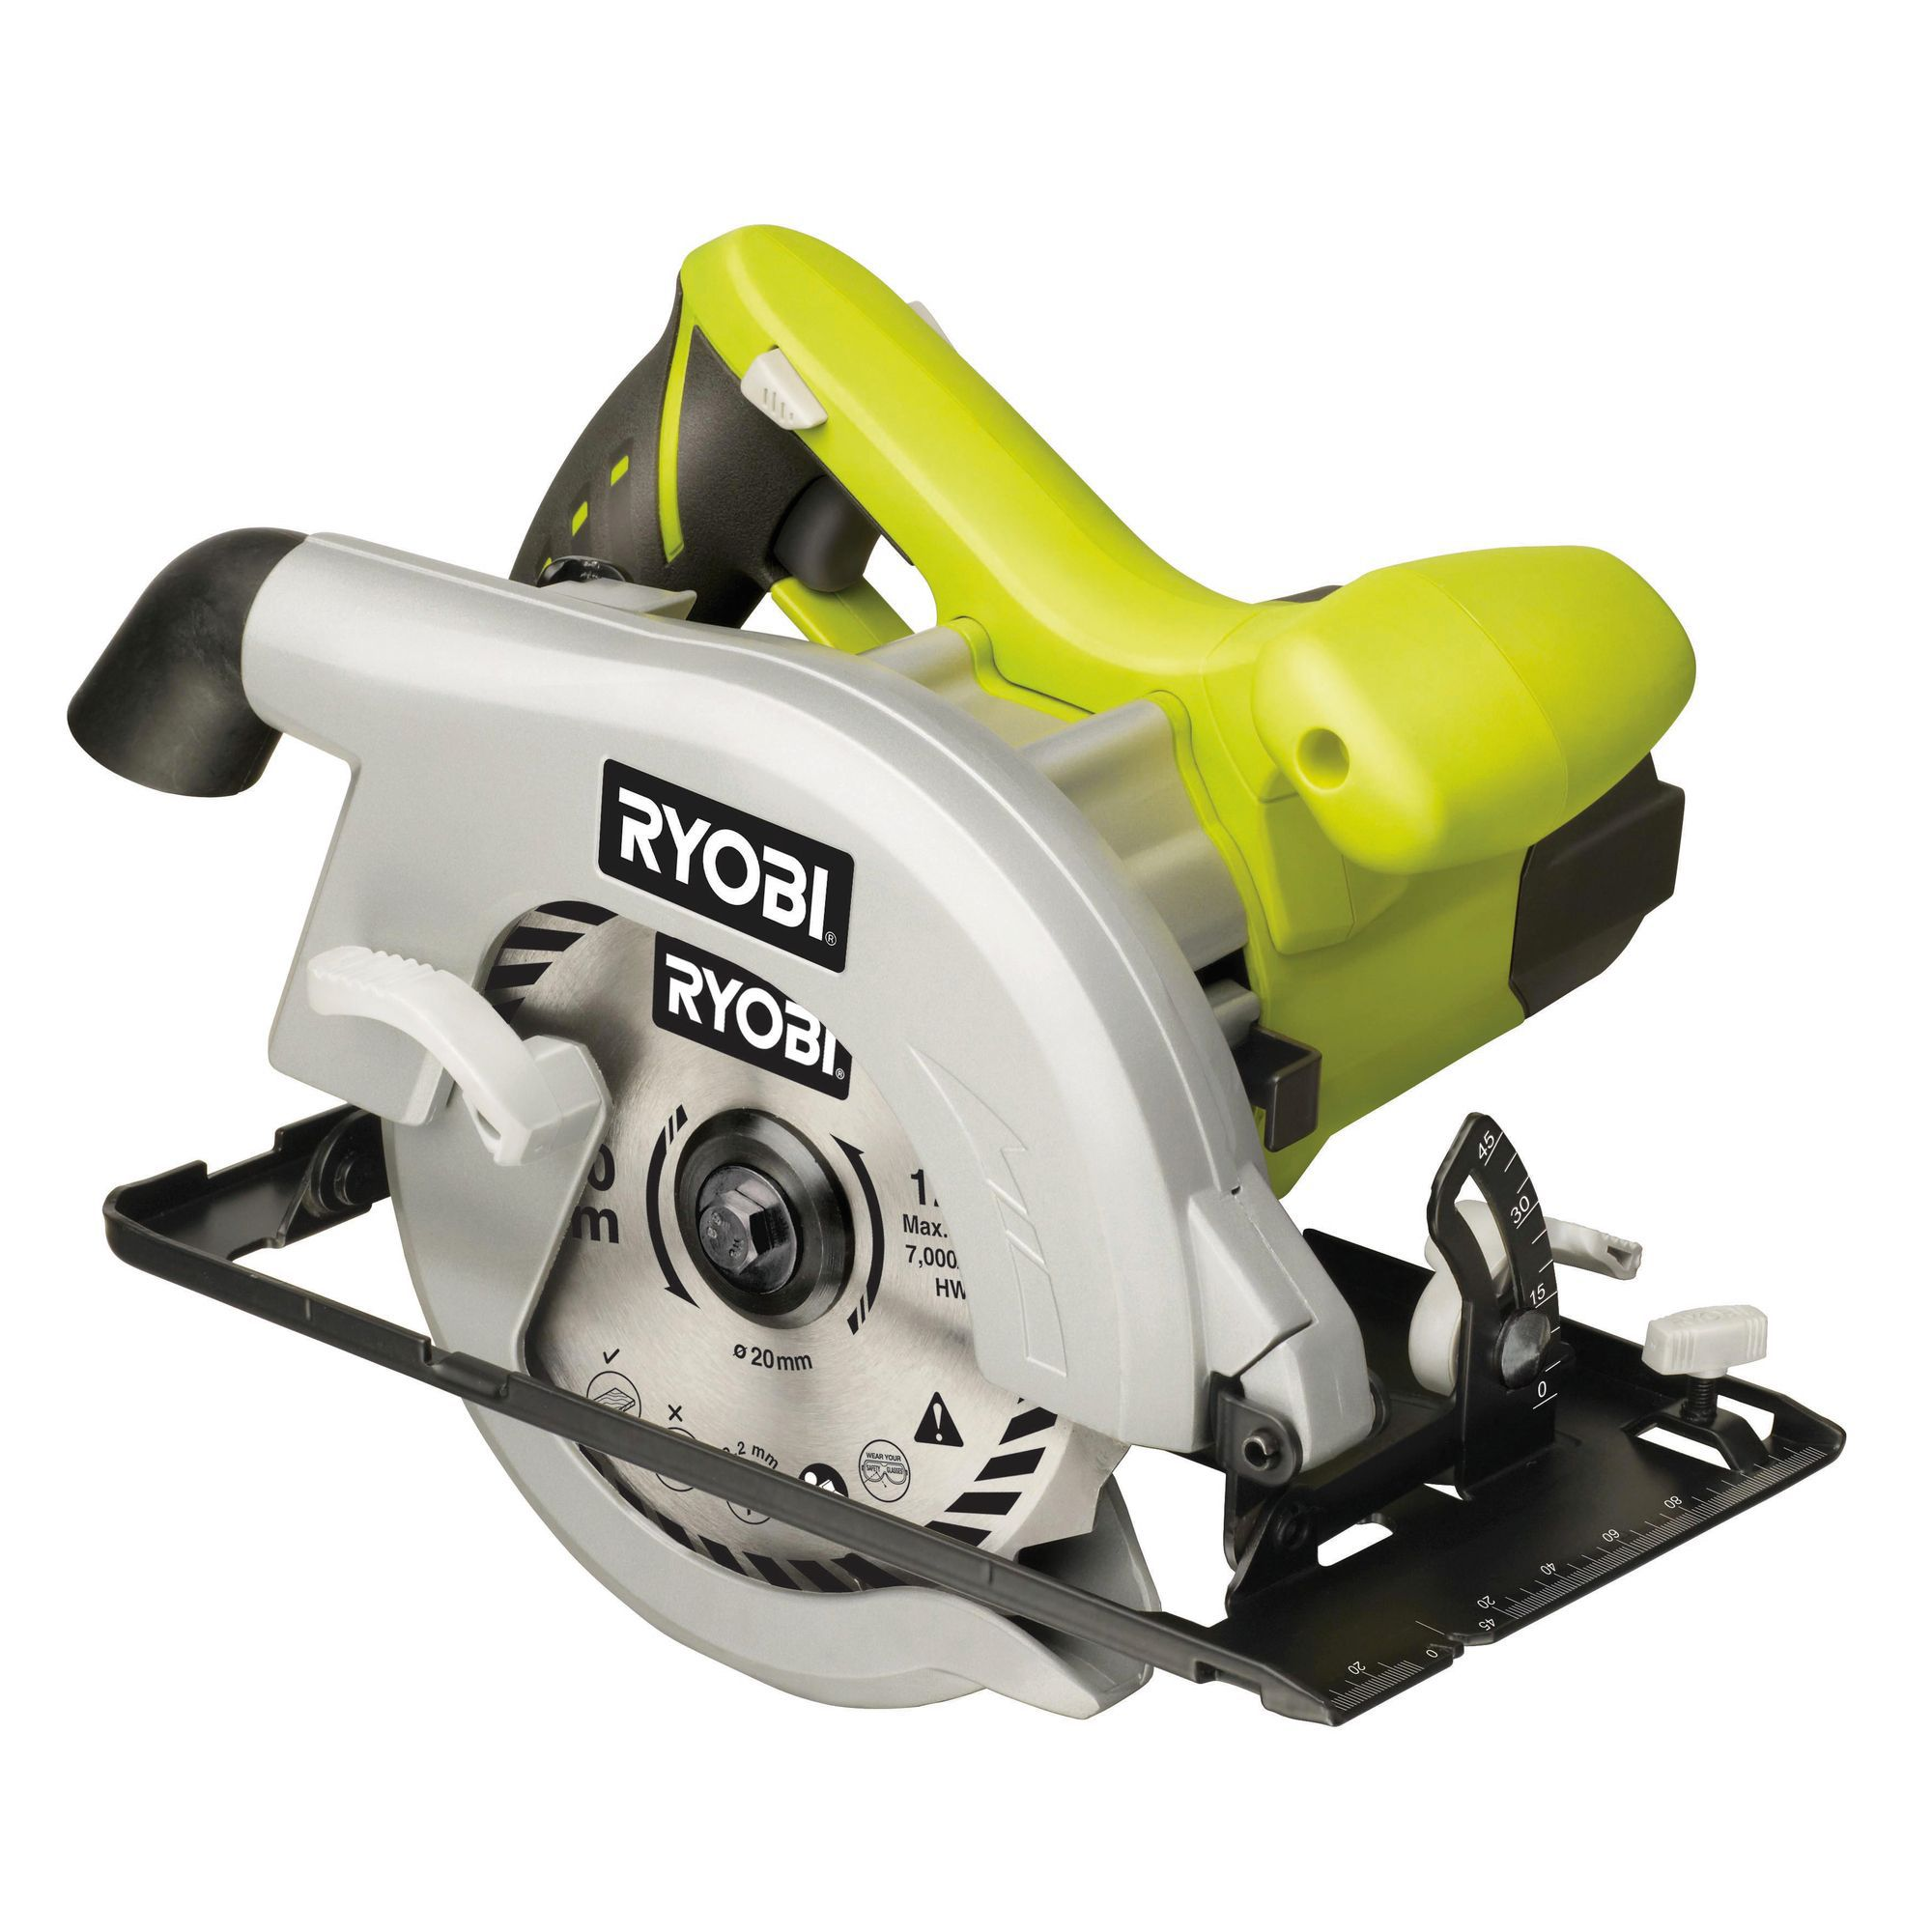 Ryobi 1150w 170mm circular saw ews1150rs departments diy at bq keyboard keysfo Image collections